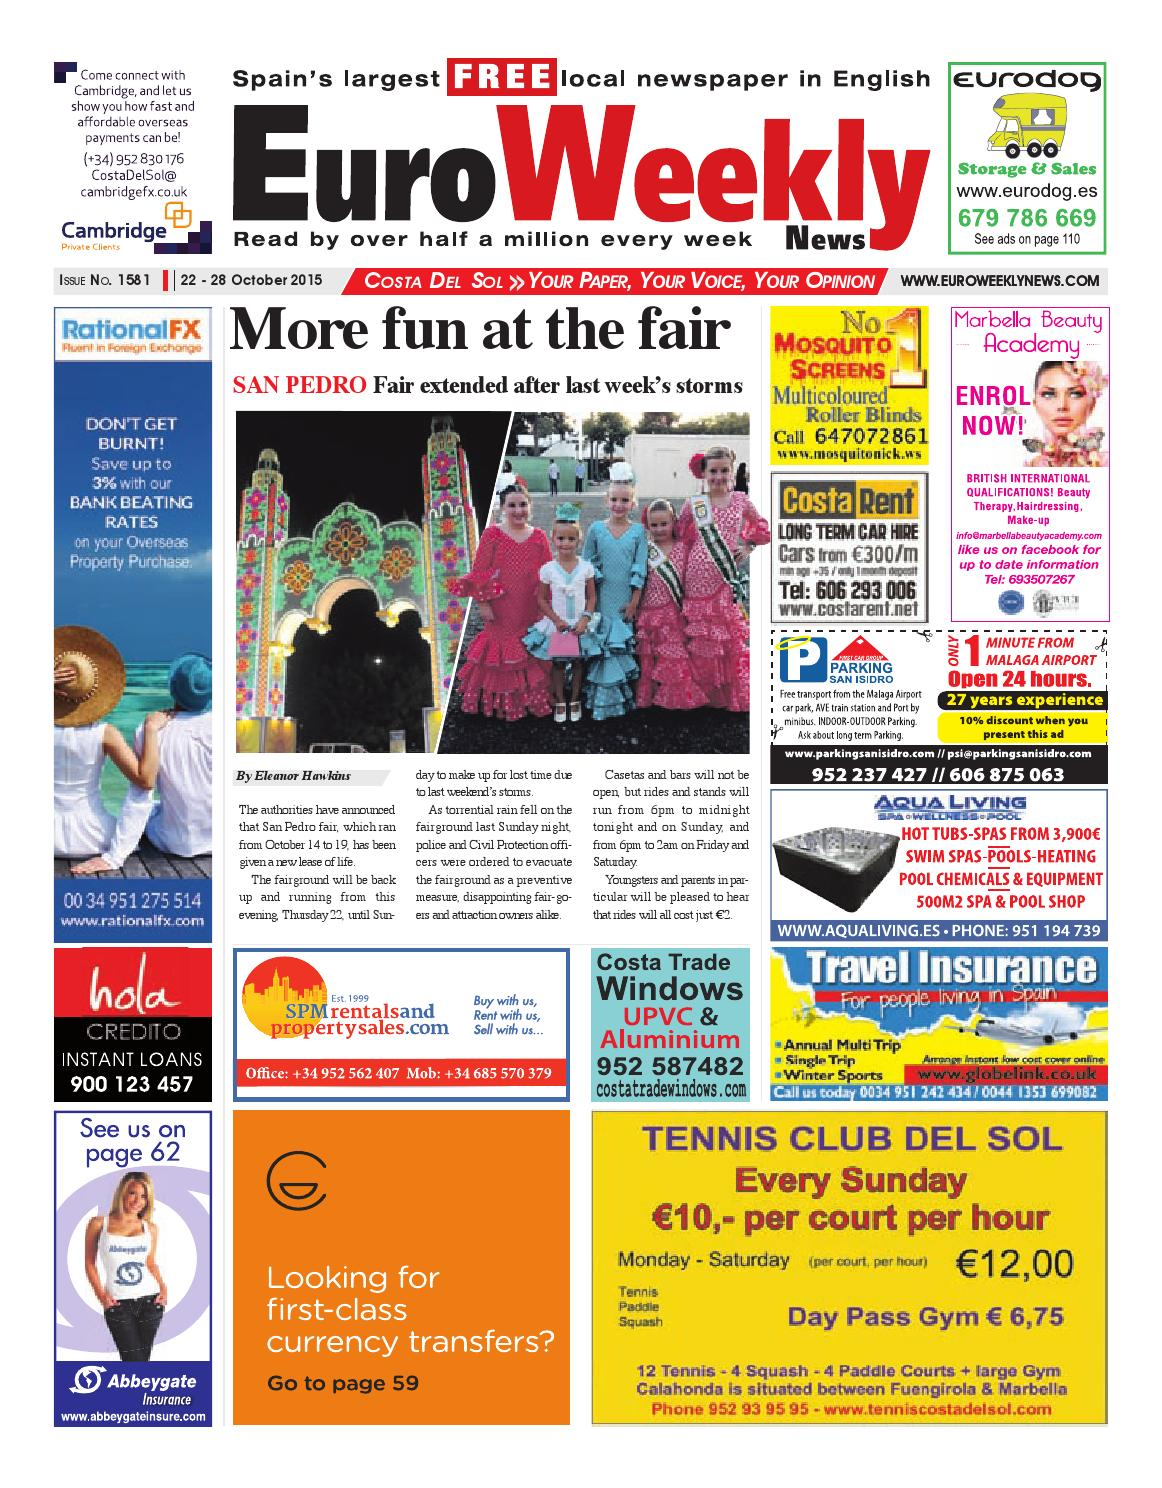 Euro Weekly News Costa Del Sol 22 28 October 2015 Issue 1581 By Euro Weekly News Media S A Issuu